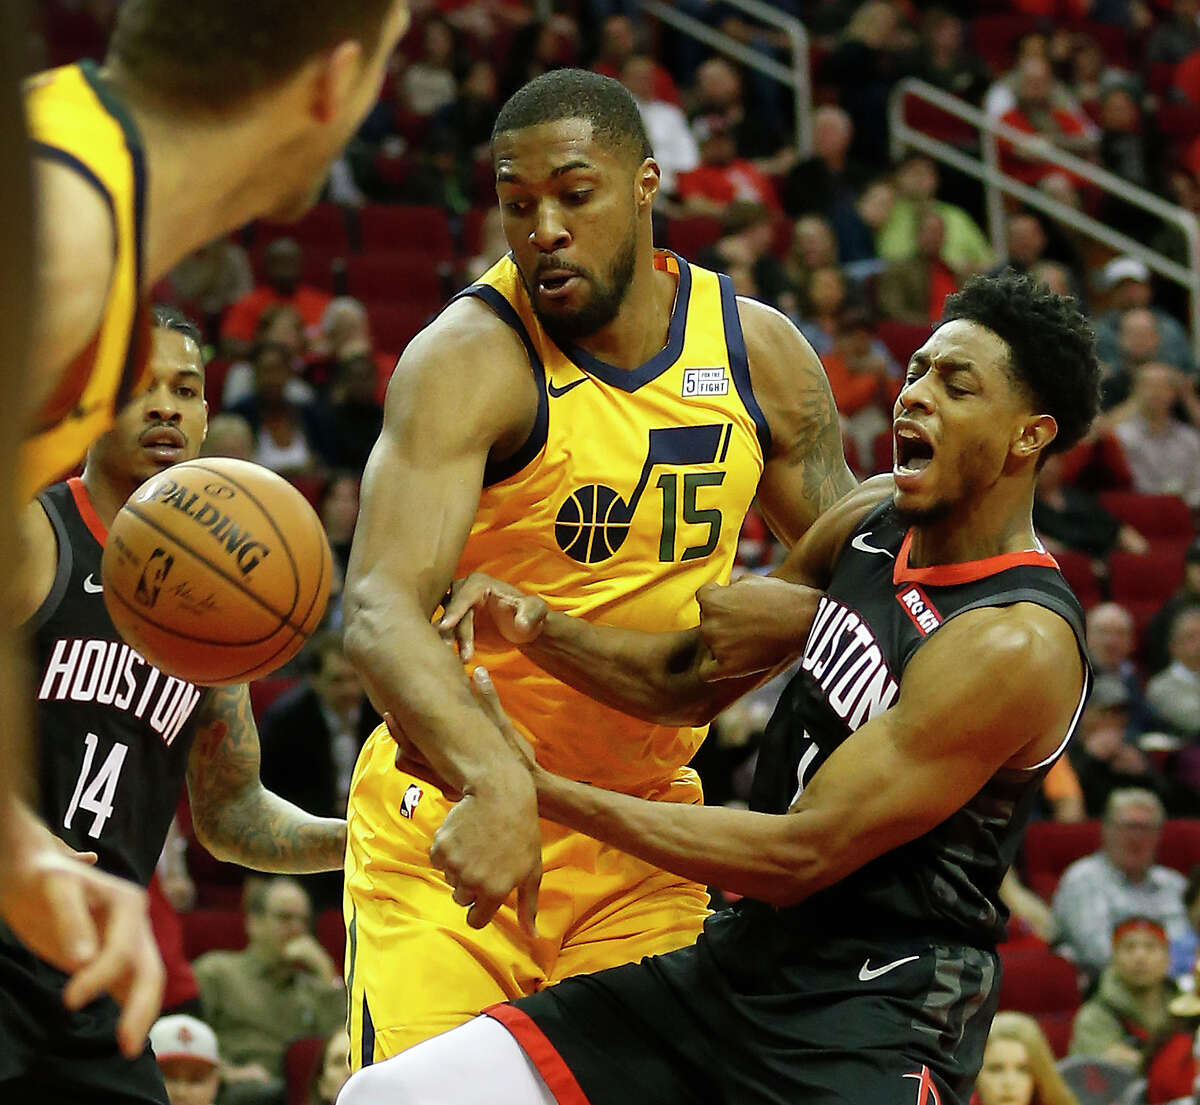 Houston Rockets guard Brandon Knight (2) battles against Utah Jazz forward Derrick Favors (15) during the first half of an NBA game at Toyota Center, Monday, Dec. 17, 2018, in Houston.